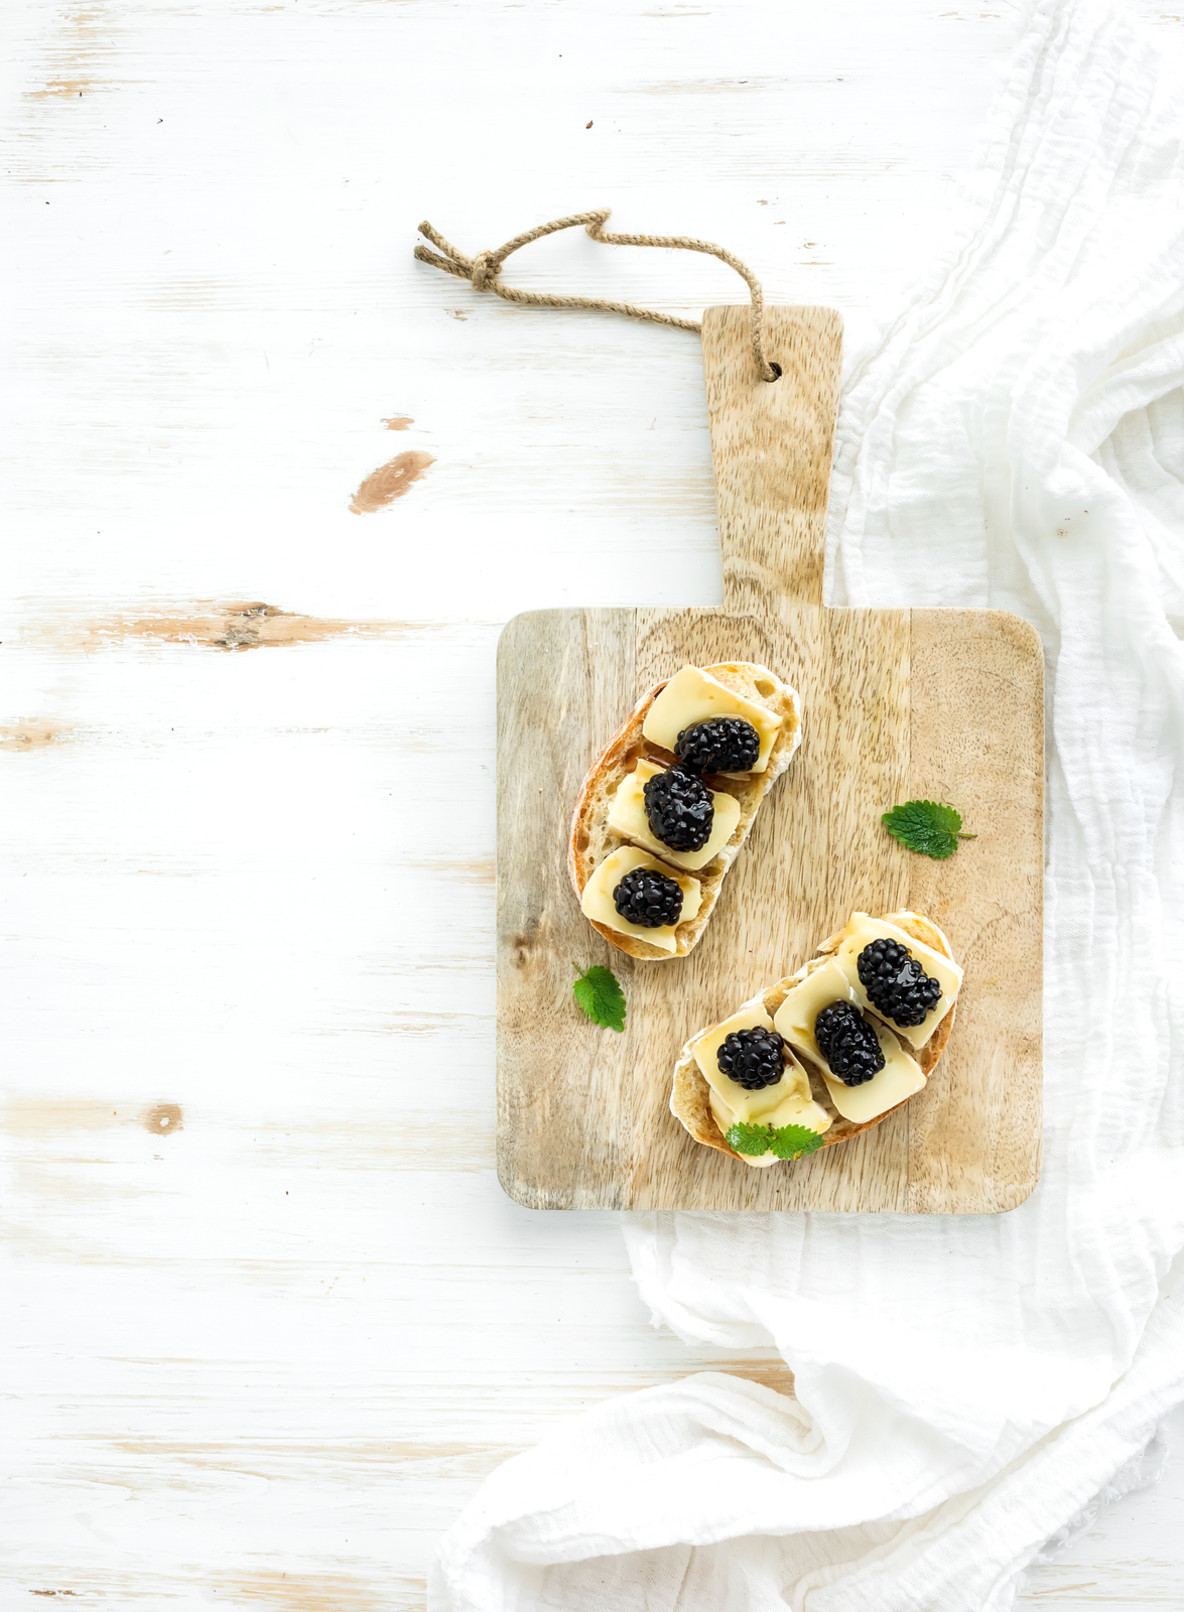 Bruschetta sandwich with brie cheese  honey and blackberry on rustic serving board over white wooden background  top view